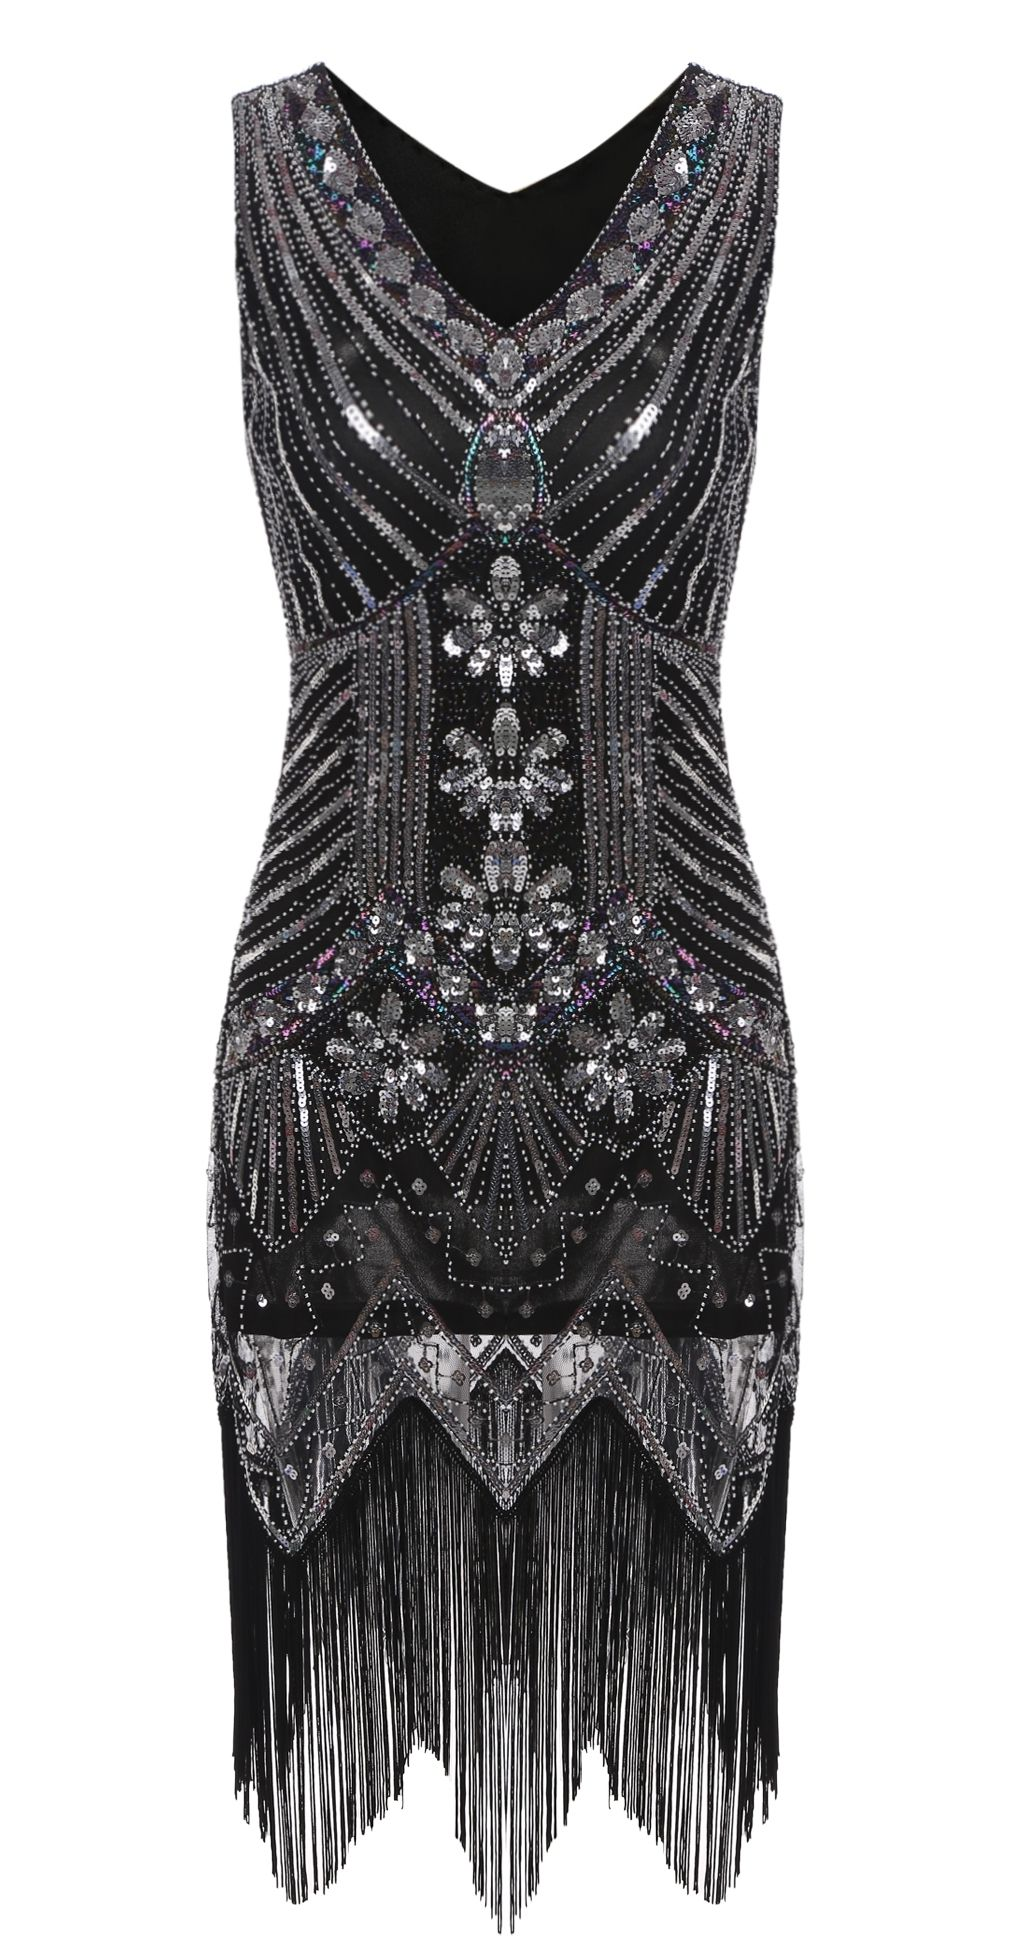 Silver vintage s style tassel sequined flapper party dress